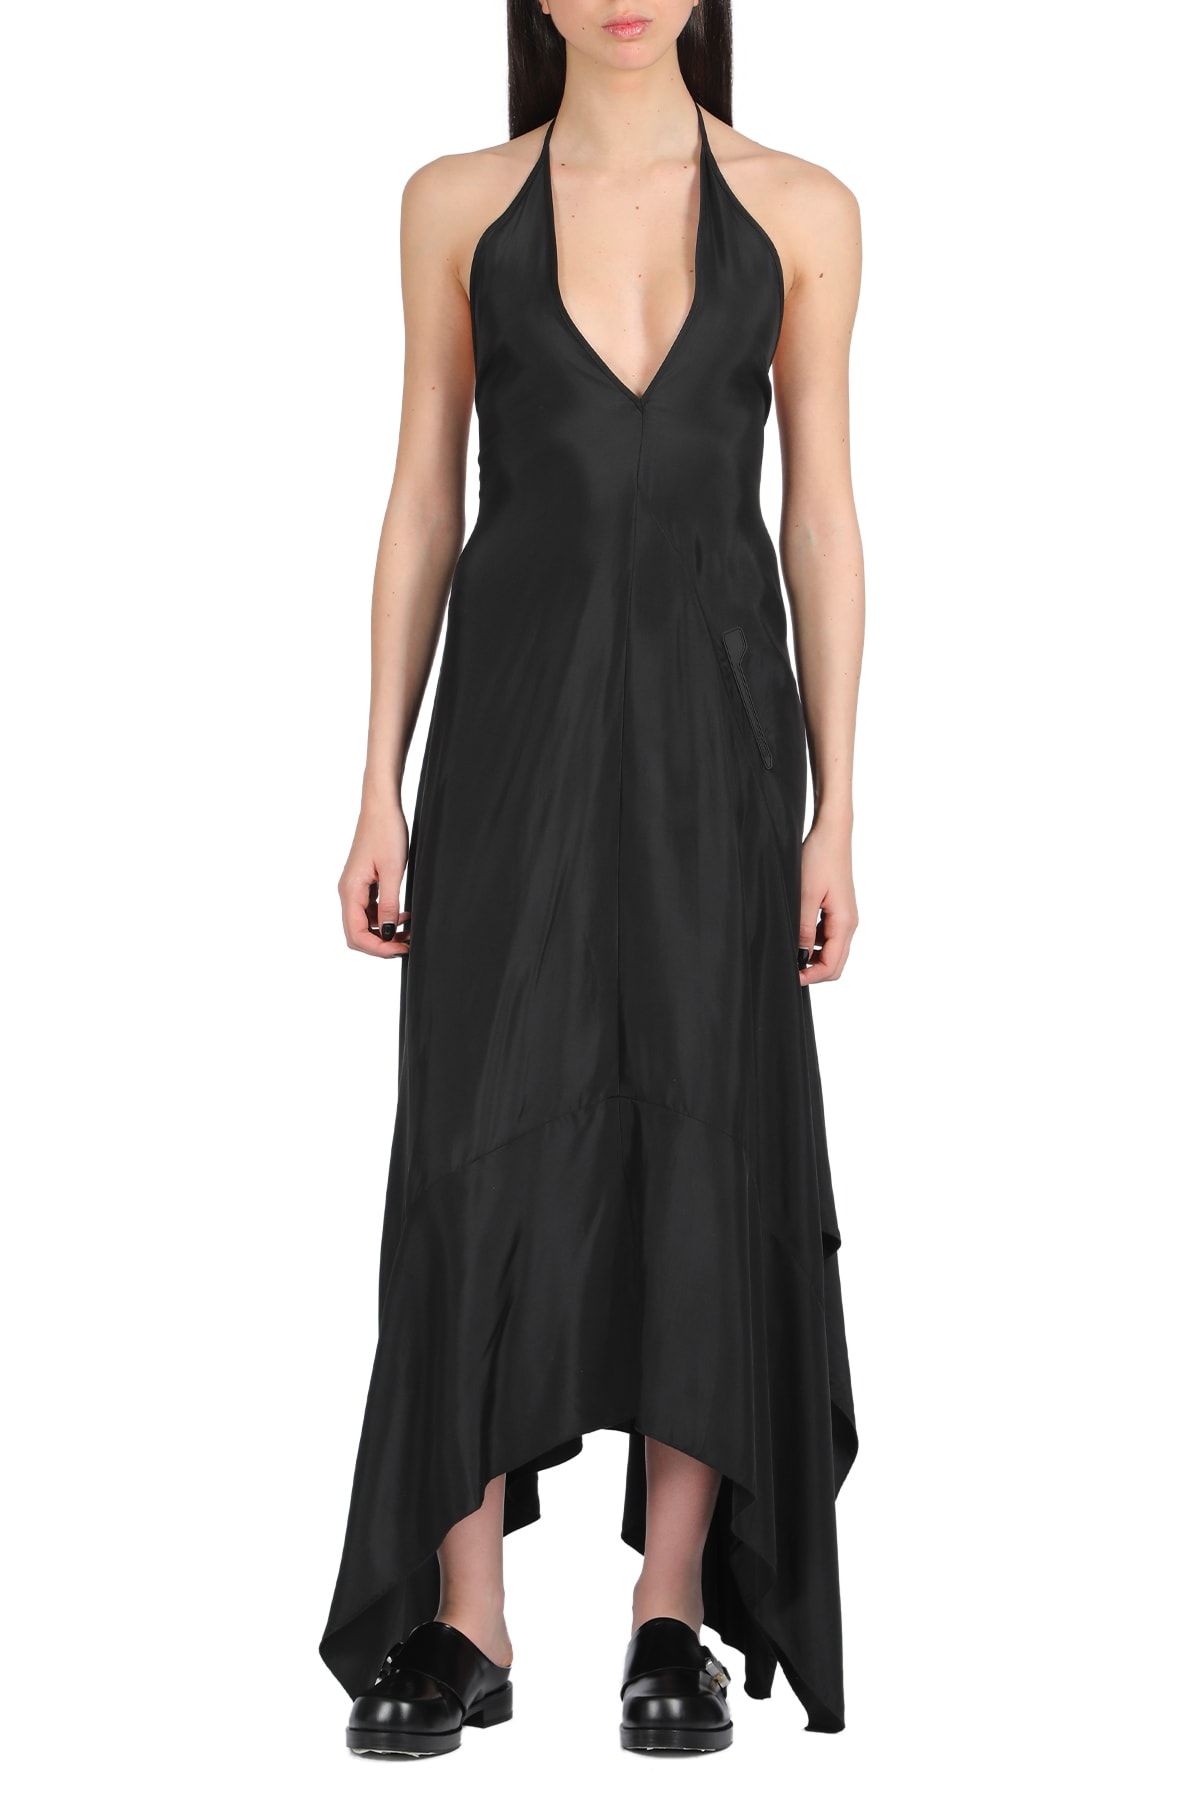 Buy 1017 Alyx 9sm Vulcano Dress online, shop 1017 ALYX 9SM with free shipping